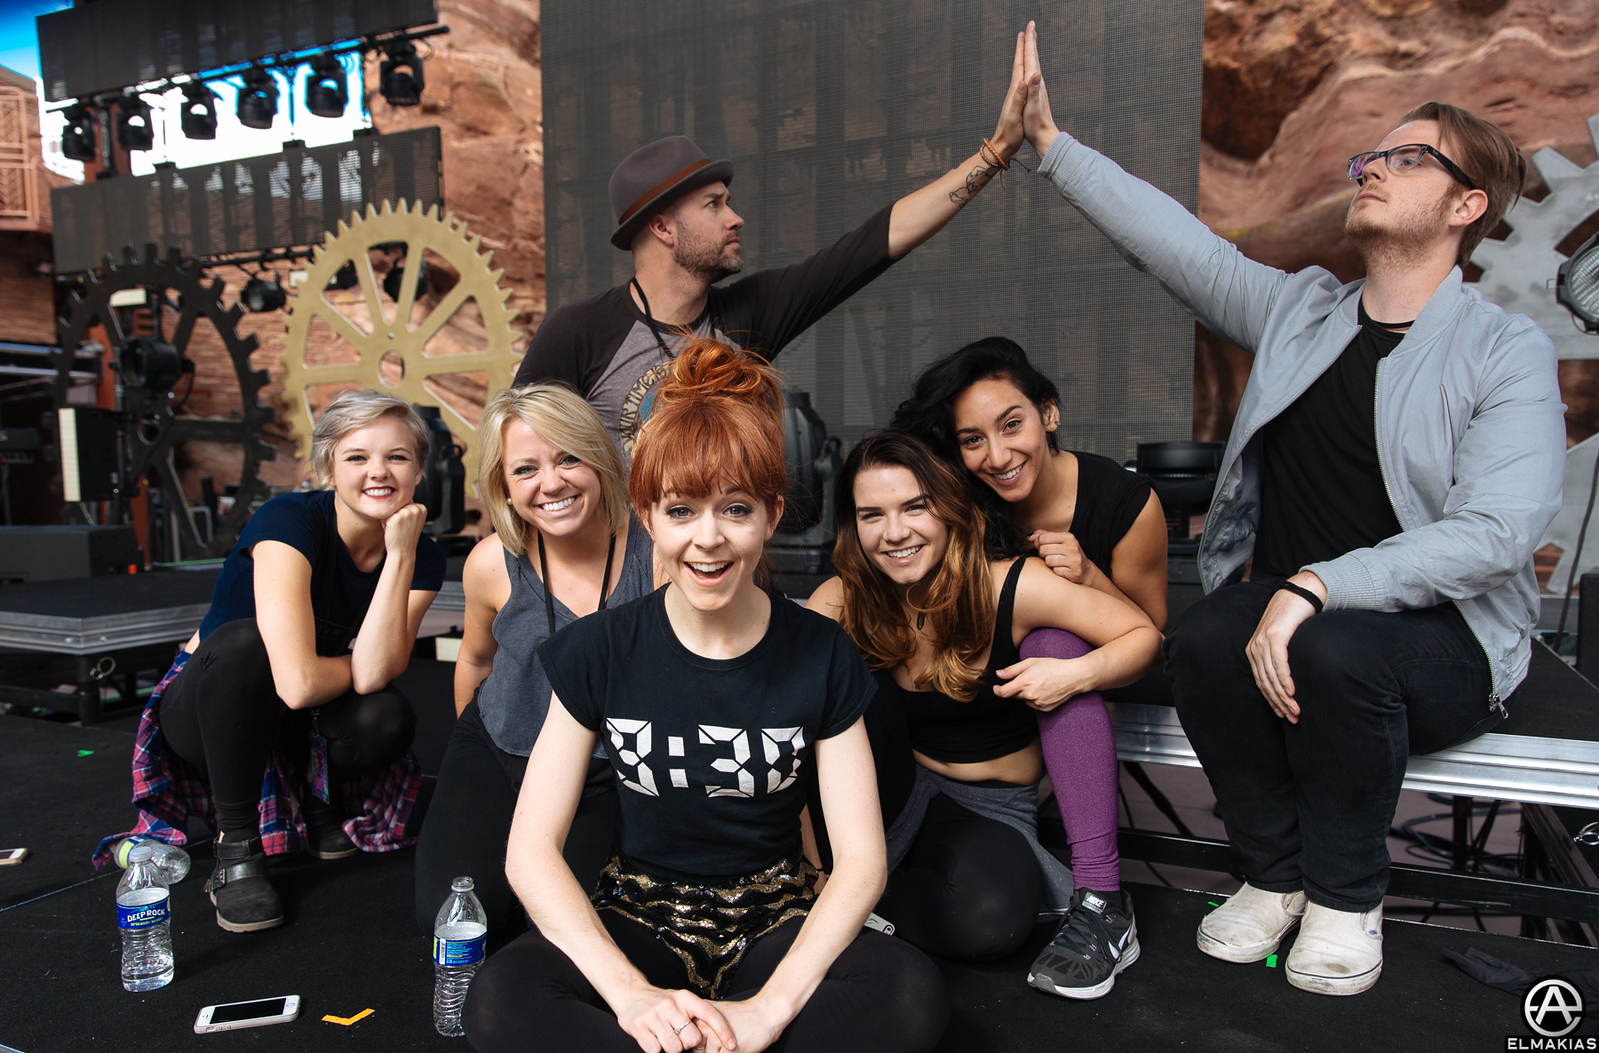 Lindsey Stirling band and dancers! The full team